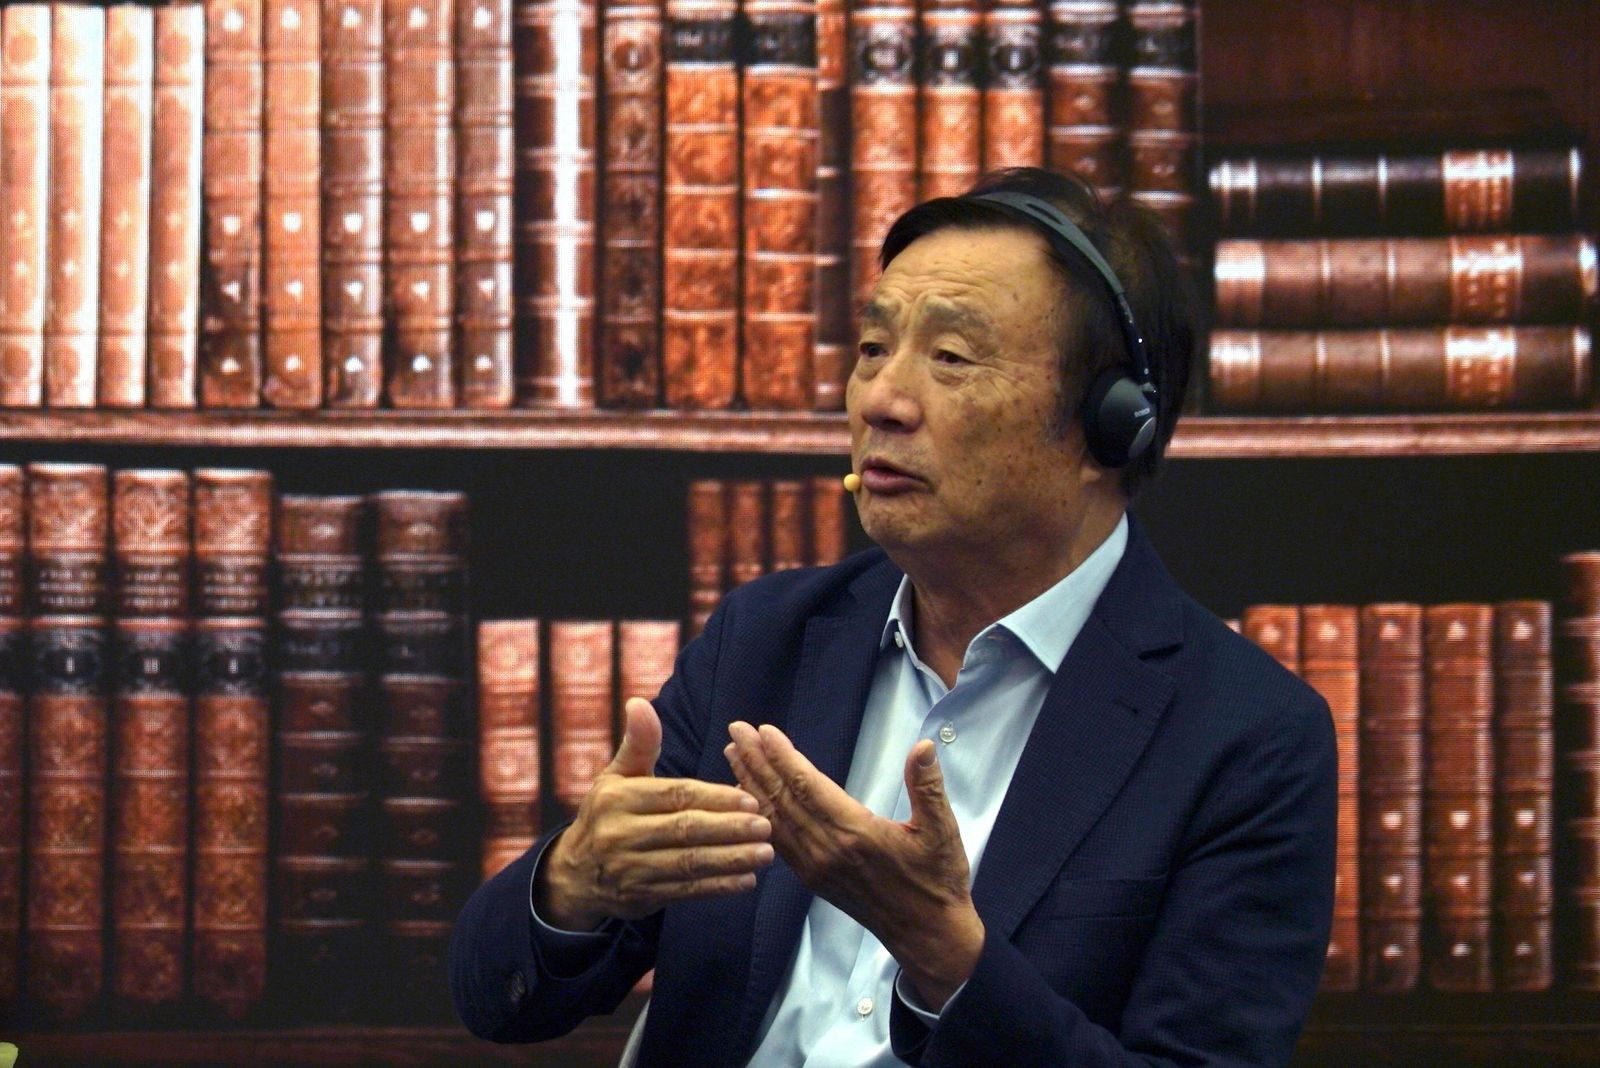 Huawei founder Ren Zhengfei speaks at a roundtable at the telecom giant's headquarters in Shenzhen in southern China on Monday, June 17, 2019. (AP Photo/Dake Kang)